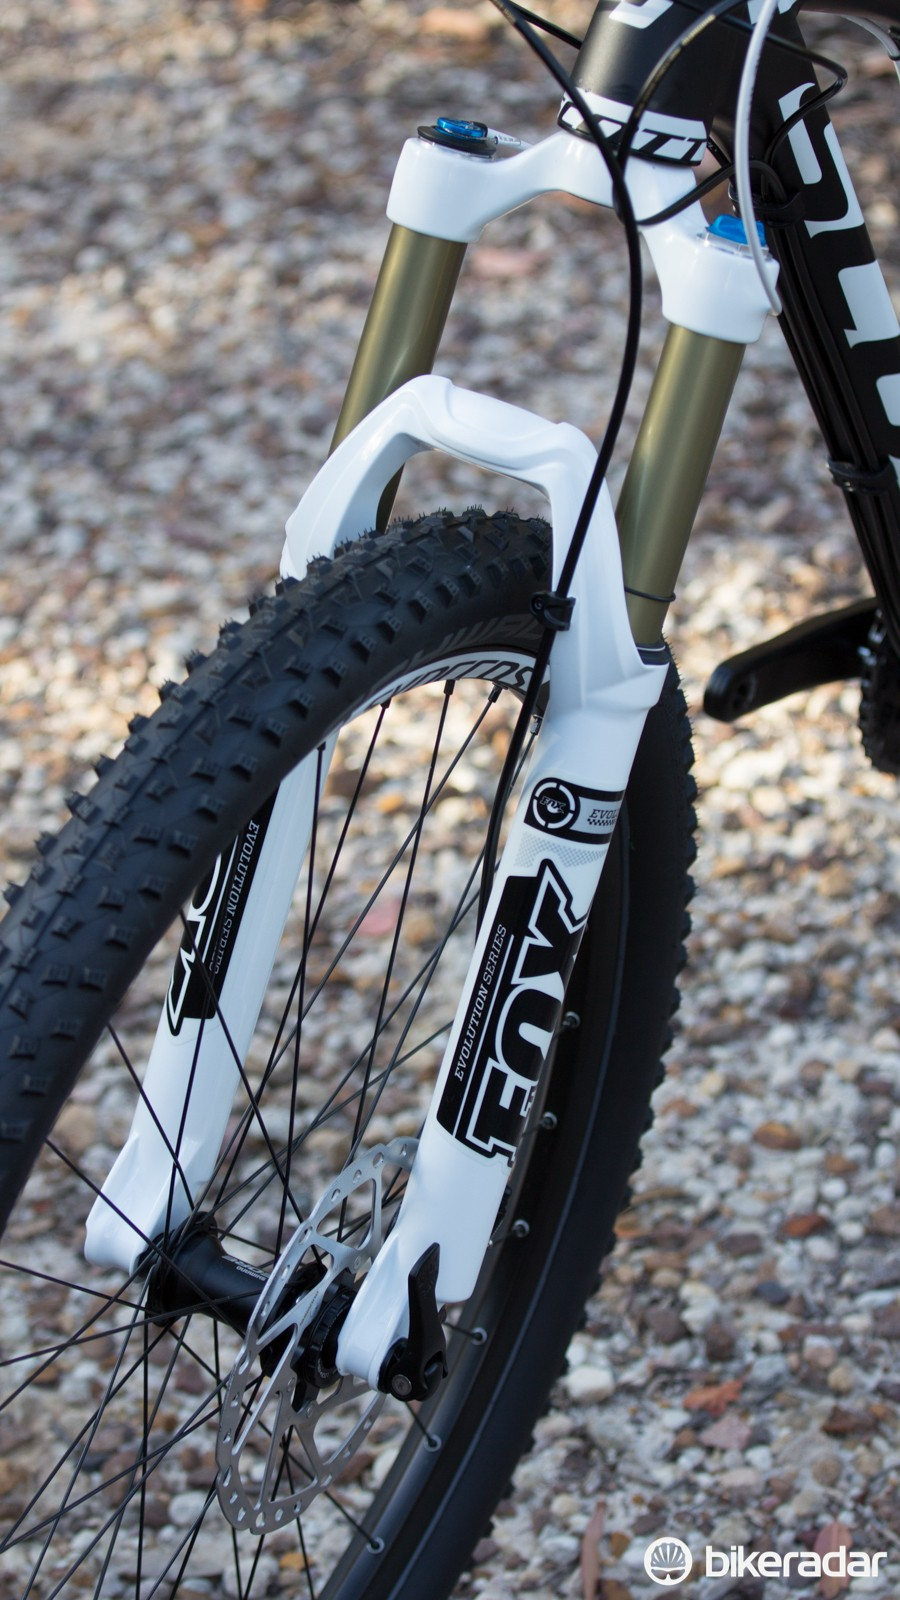 The base-model FOX Float Evolution fork is a nice match with the rear shock. A tapered steerer and 15mm thru-axle help guide the Spark